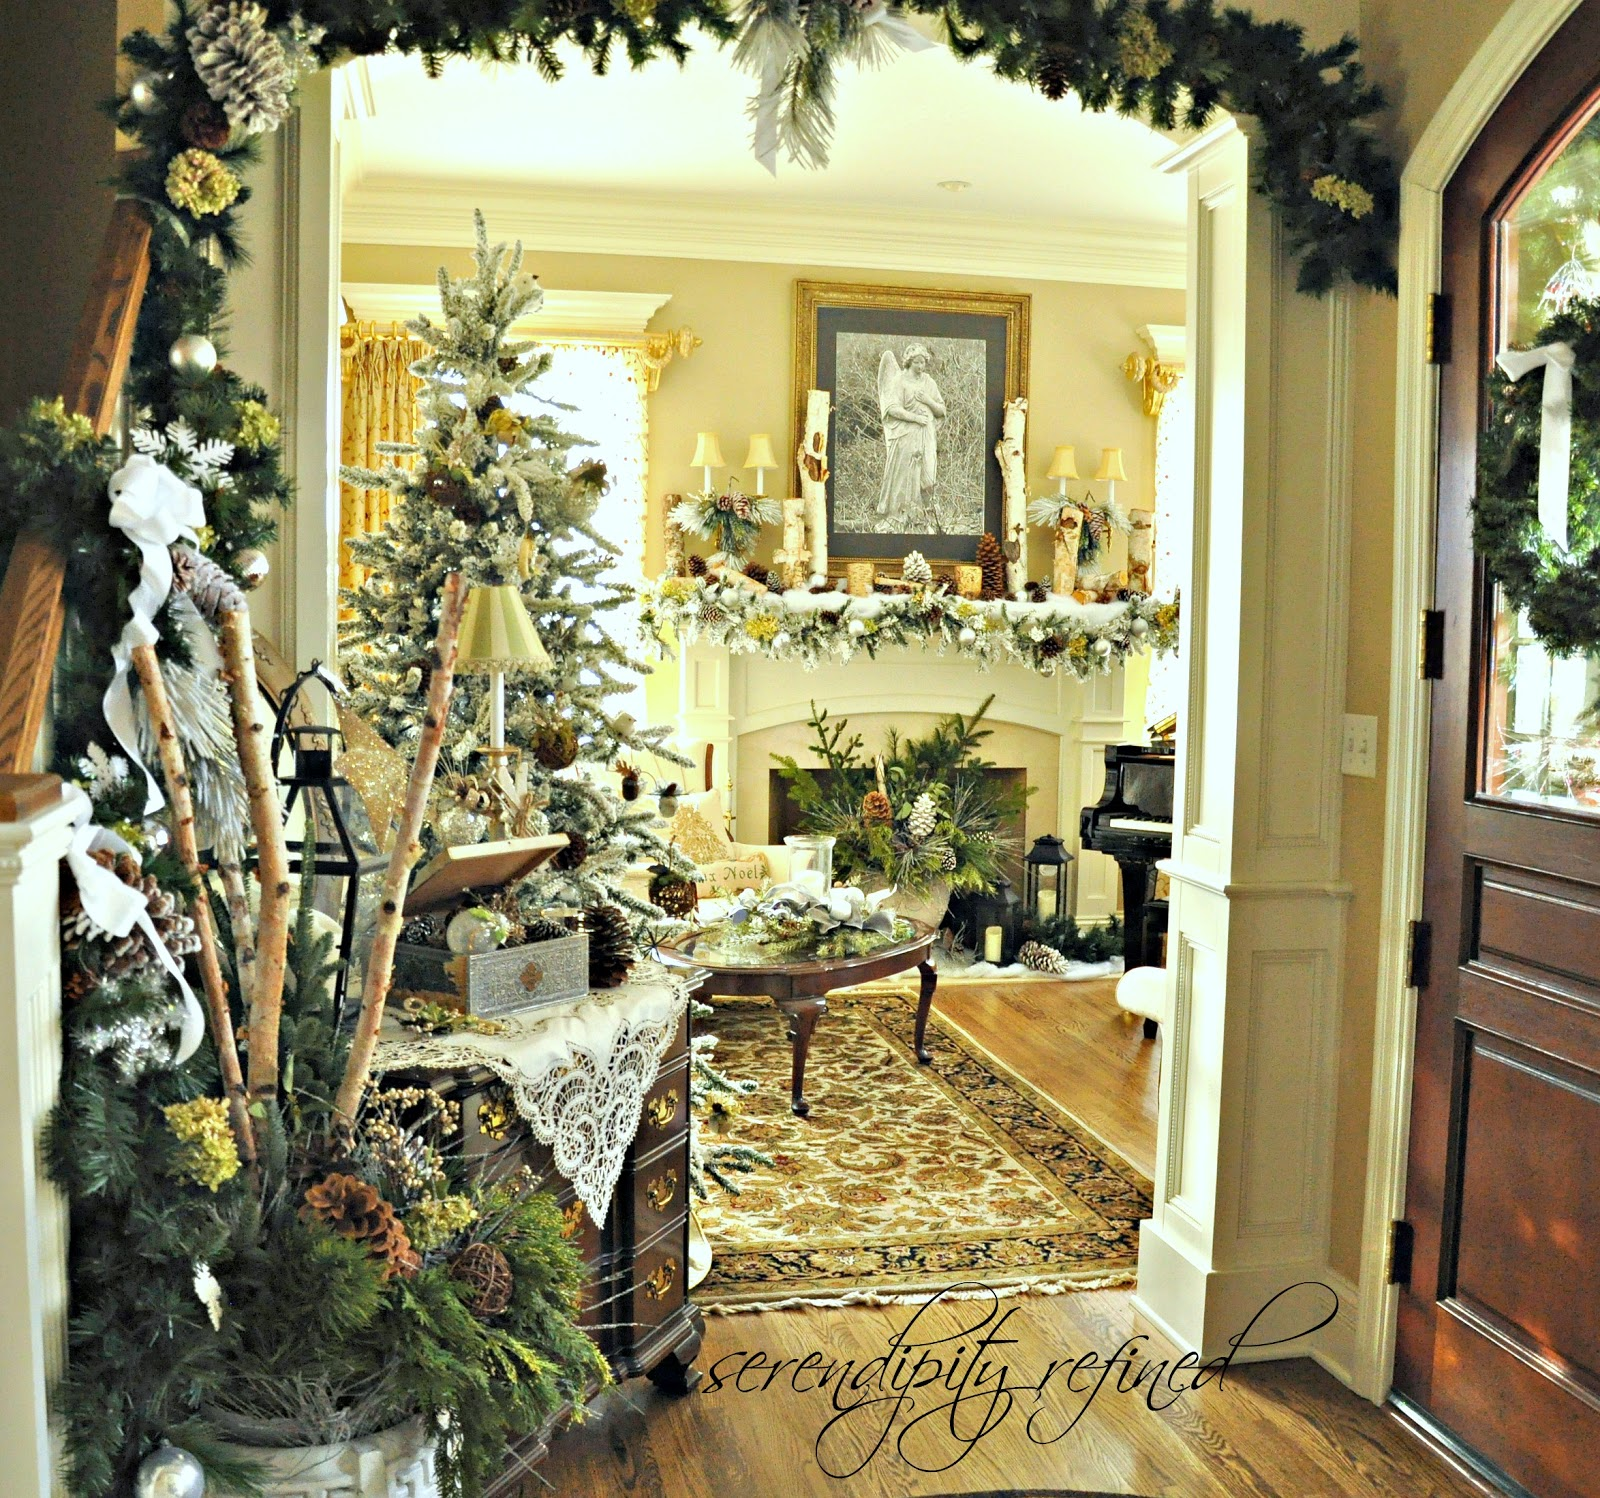 Serendipity refined blog 2012 holiday house walk stop 19 for Home decorations com